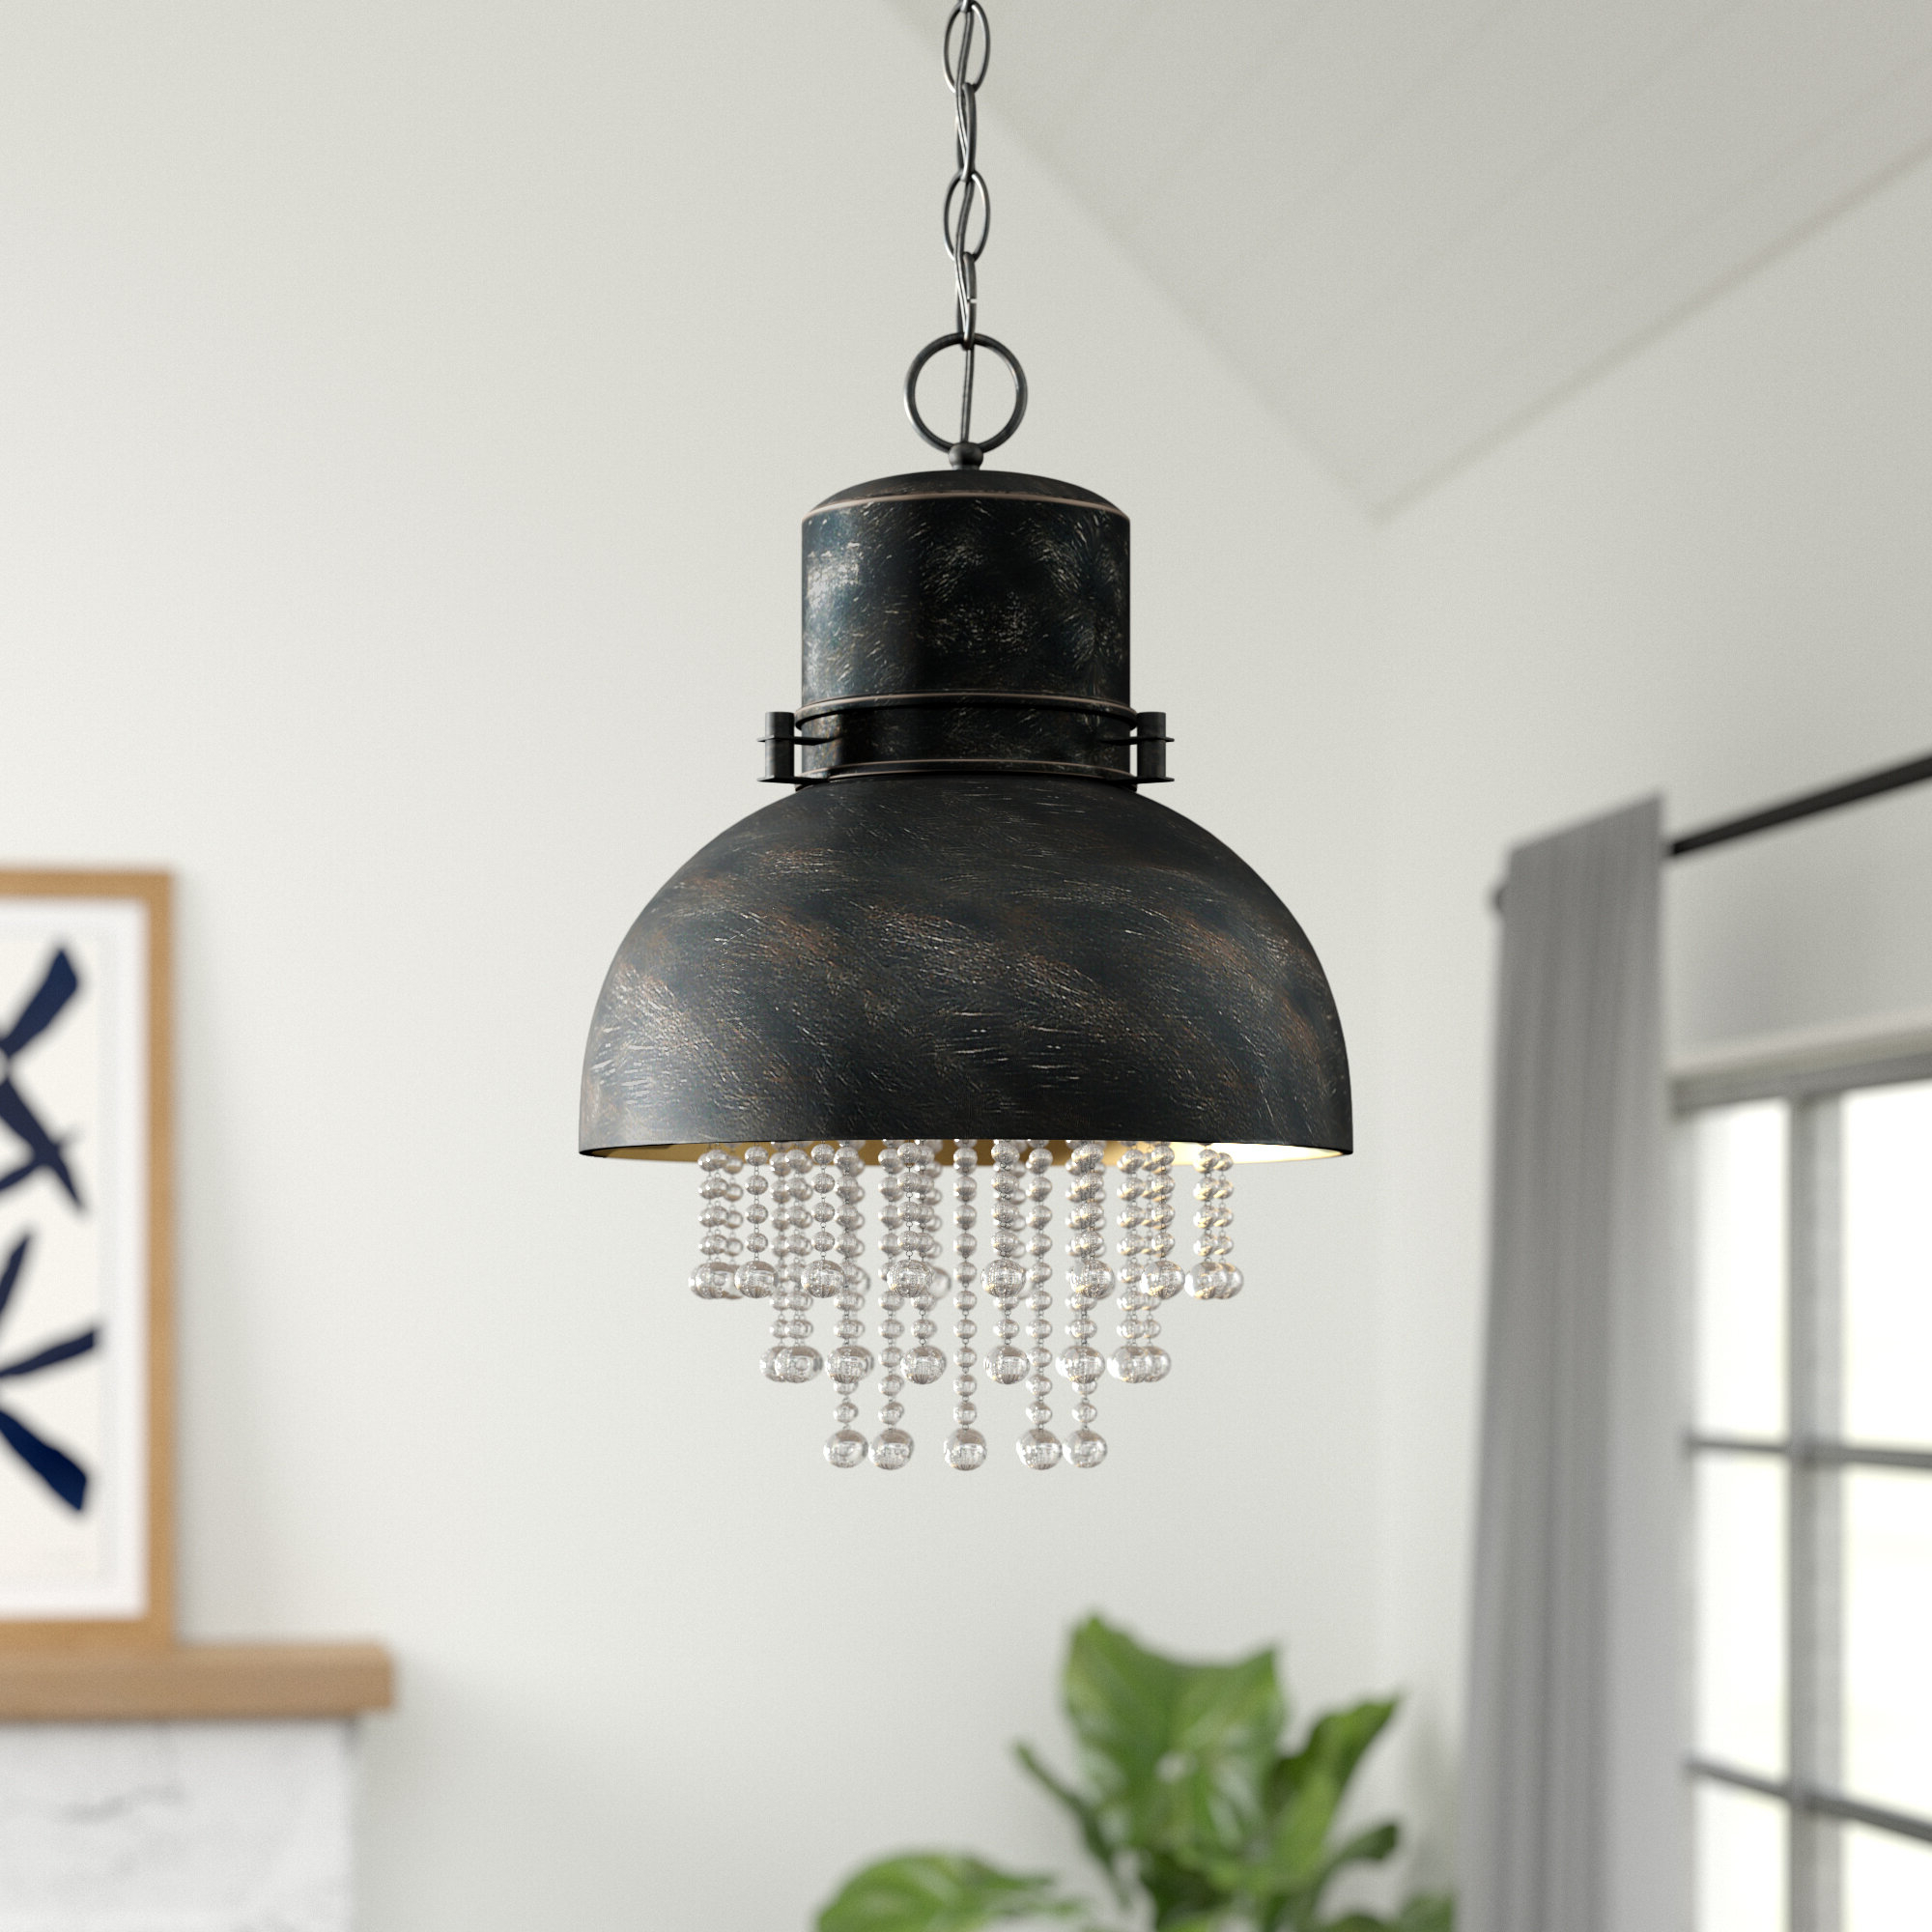 2019 Monadnock 1 Light Single Dome Pendant With Regard To Hermione 1 Light Single Drum Pendants (View 4 of 25)